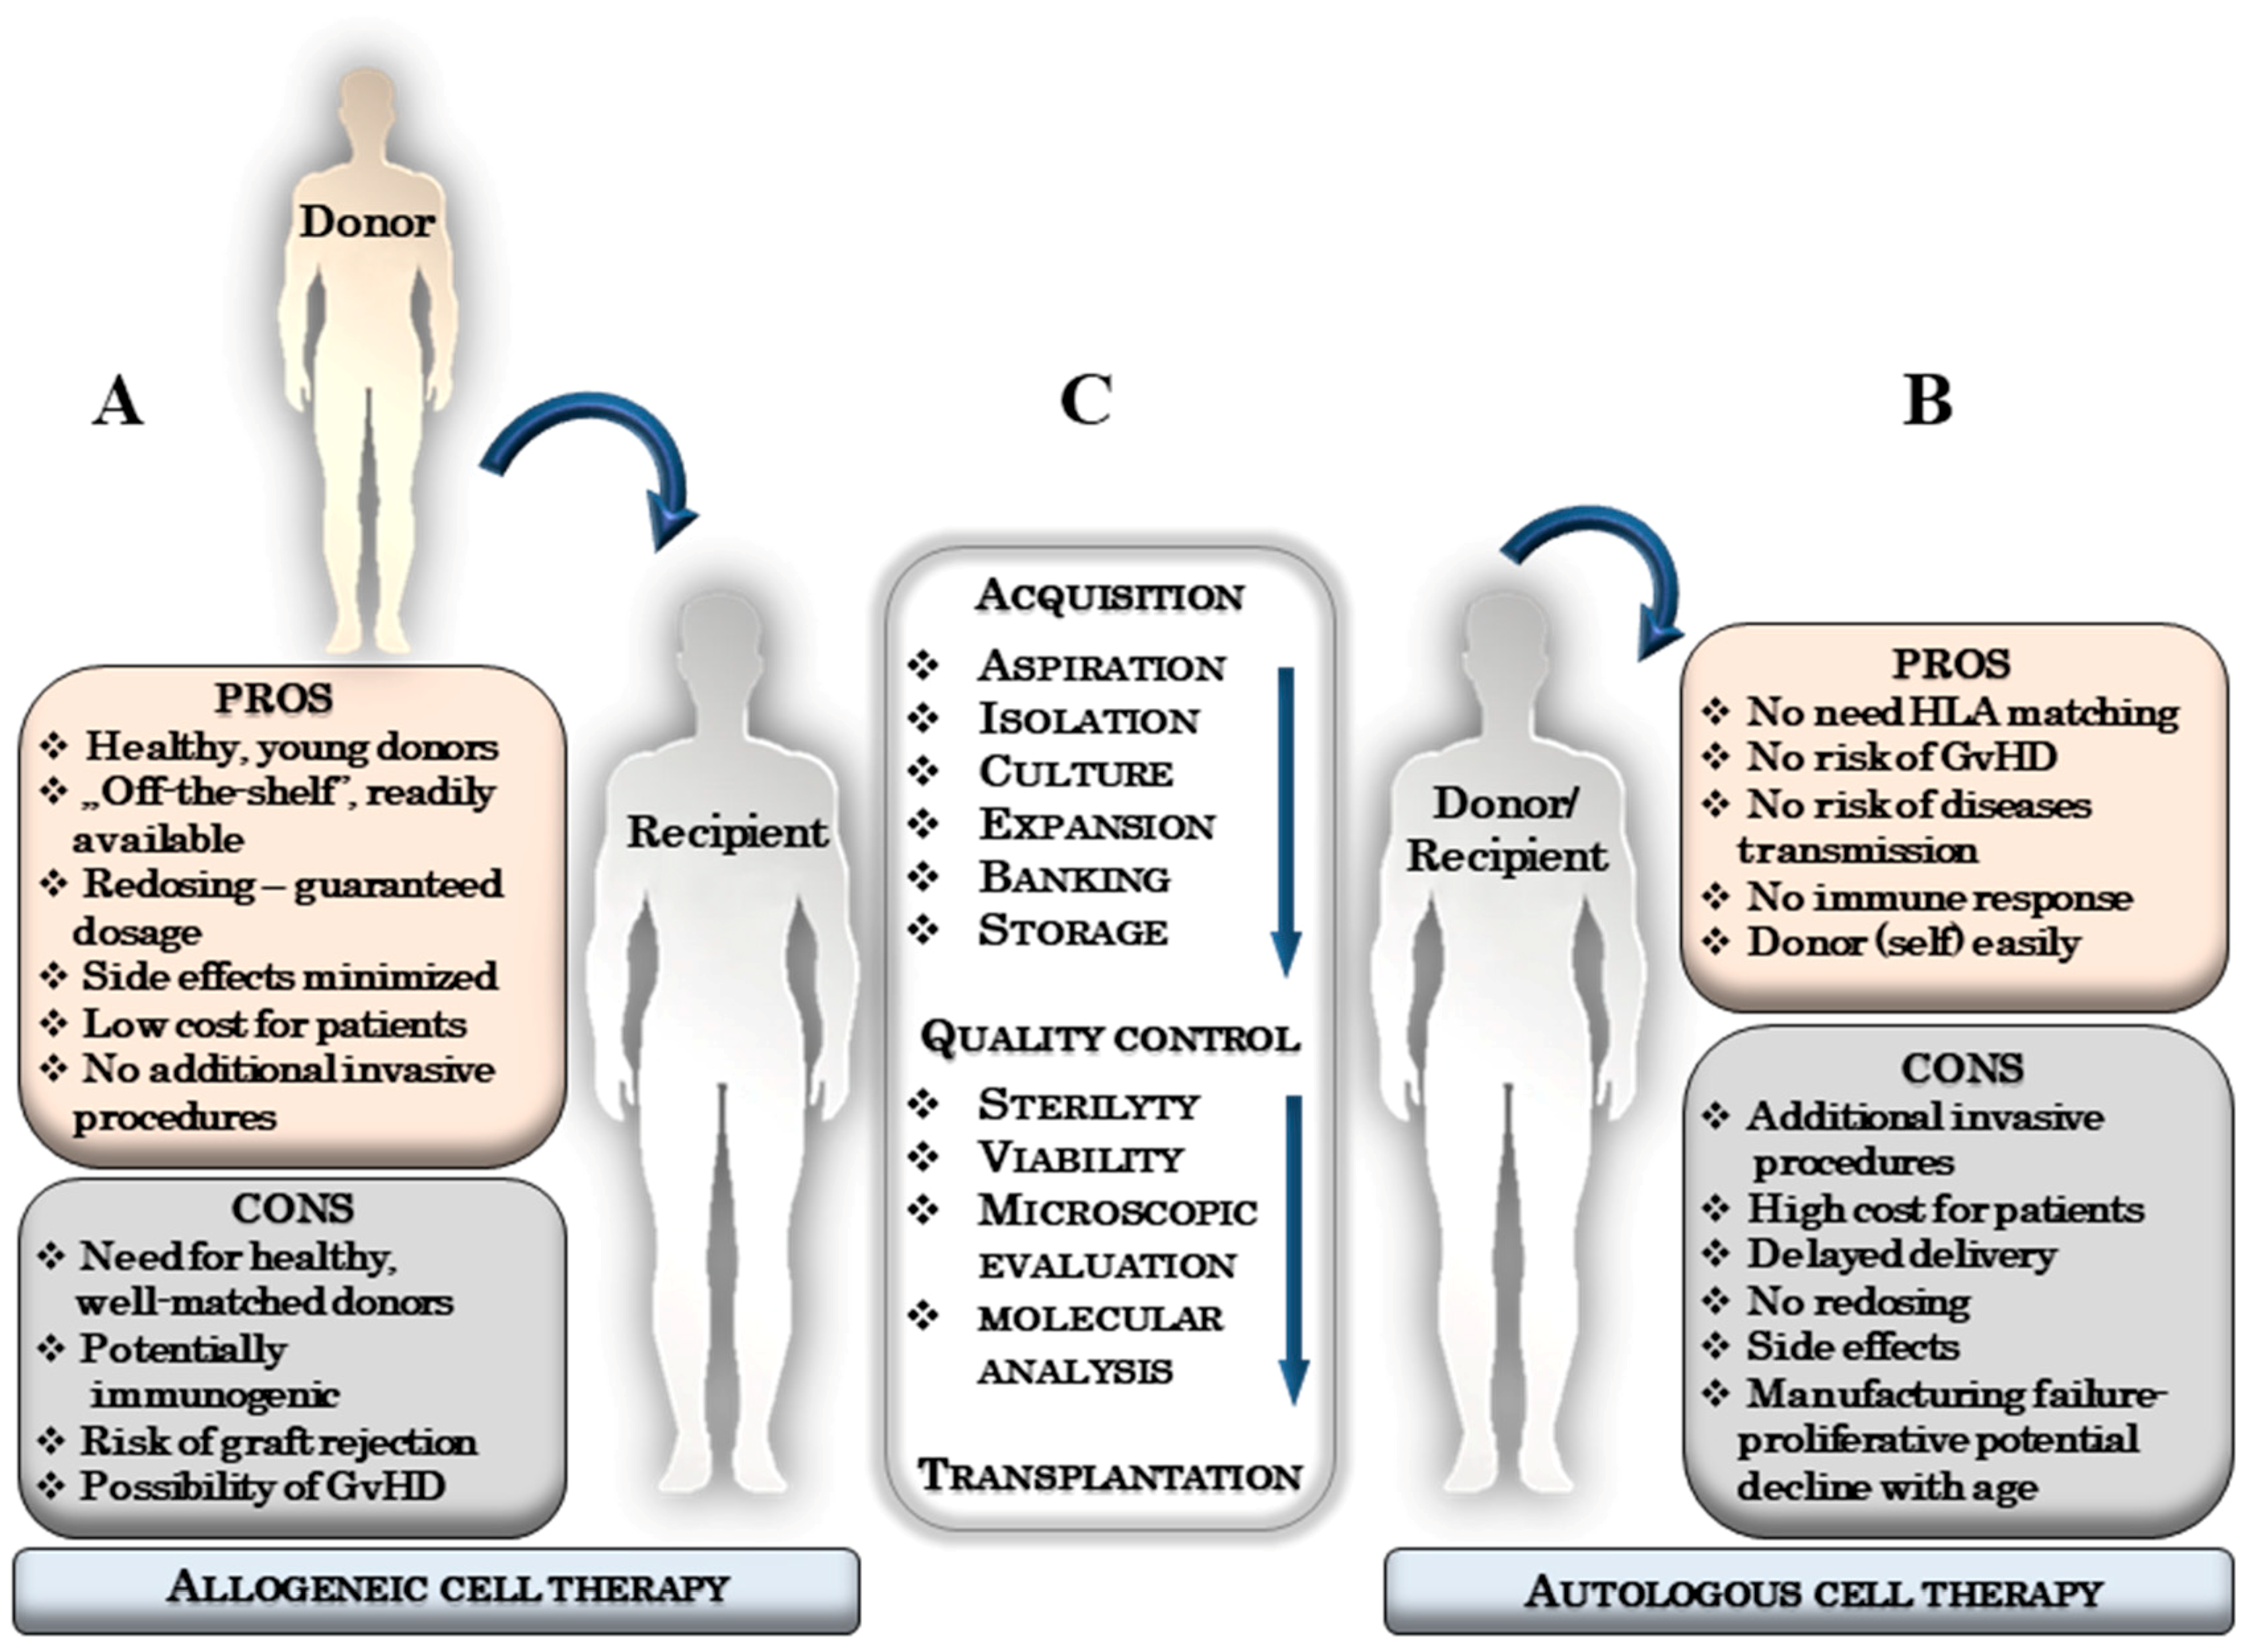 Ijms Free Full Text The Importance Of Hla Assessment In Off The Shelf Allogeneic Mesenchymal Stem Cells Based Therapies Html